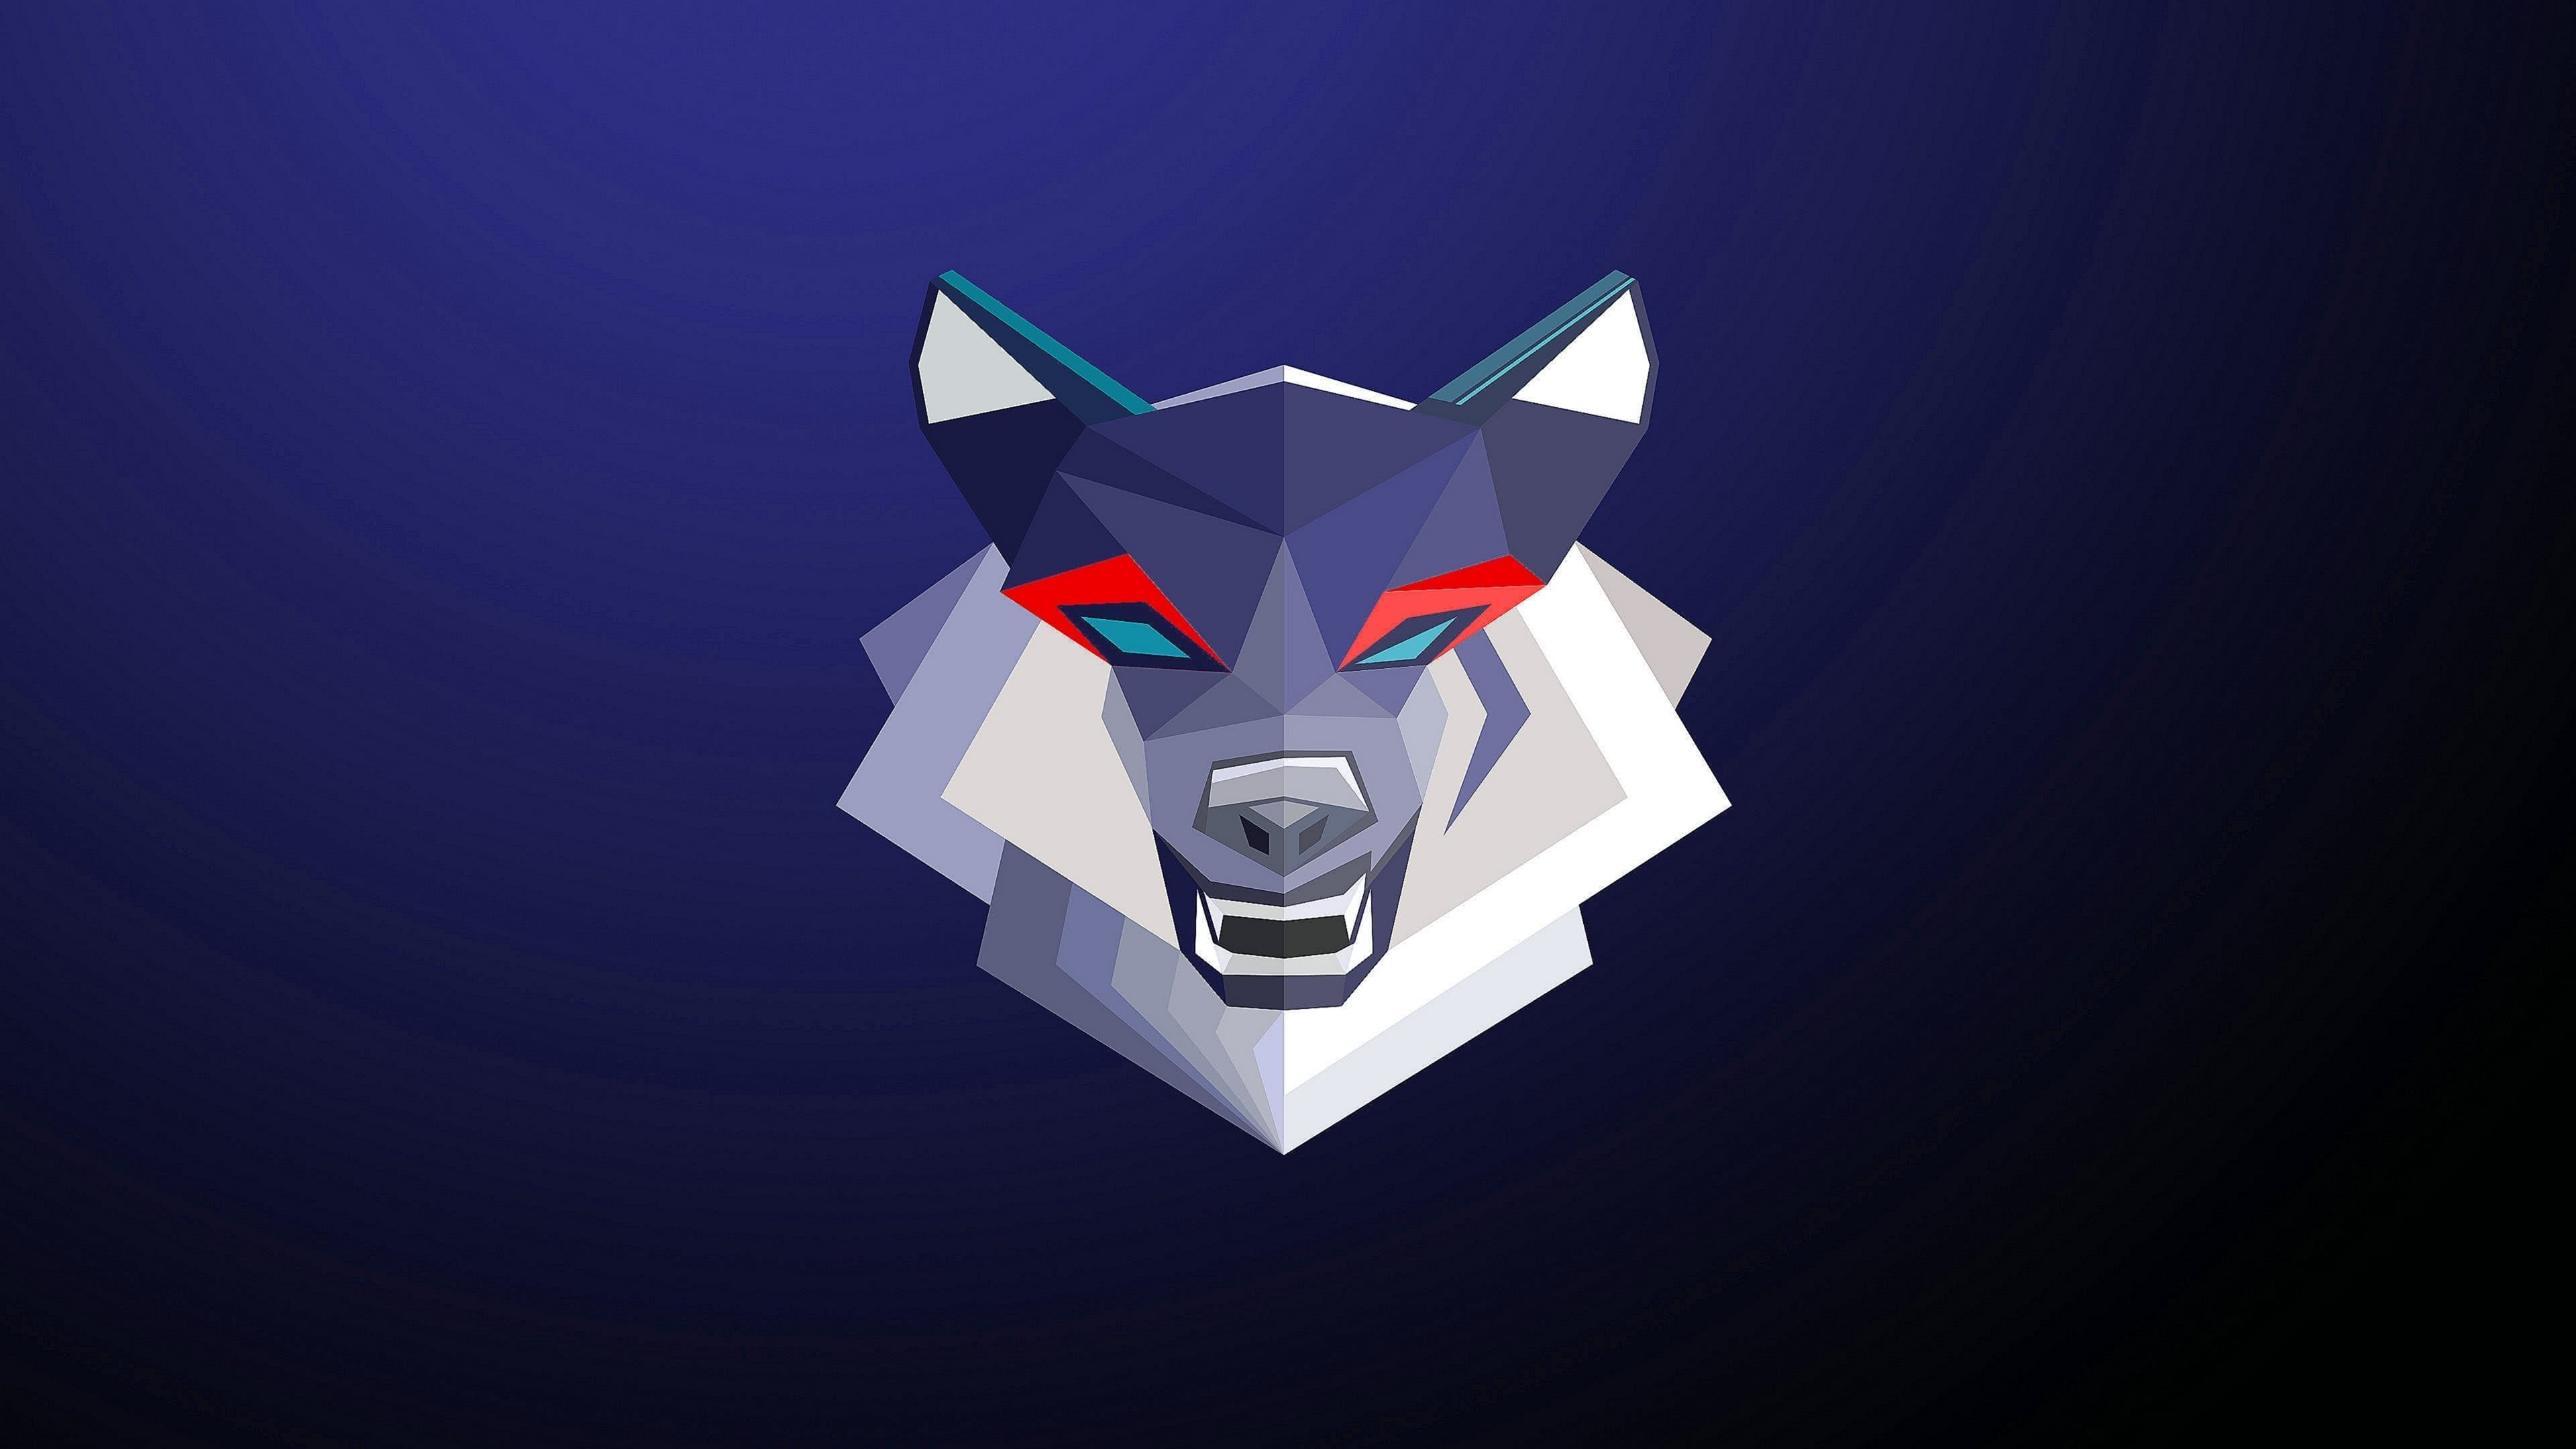 Gaming Wolf Wallpapers 4K